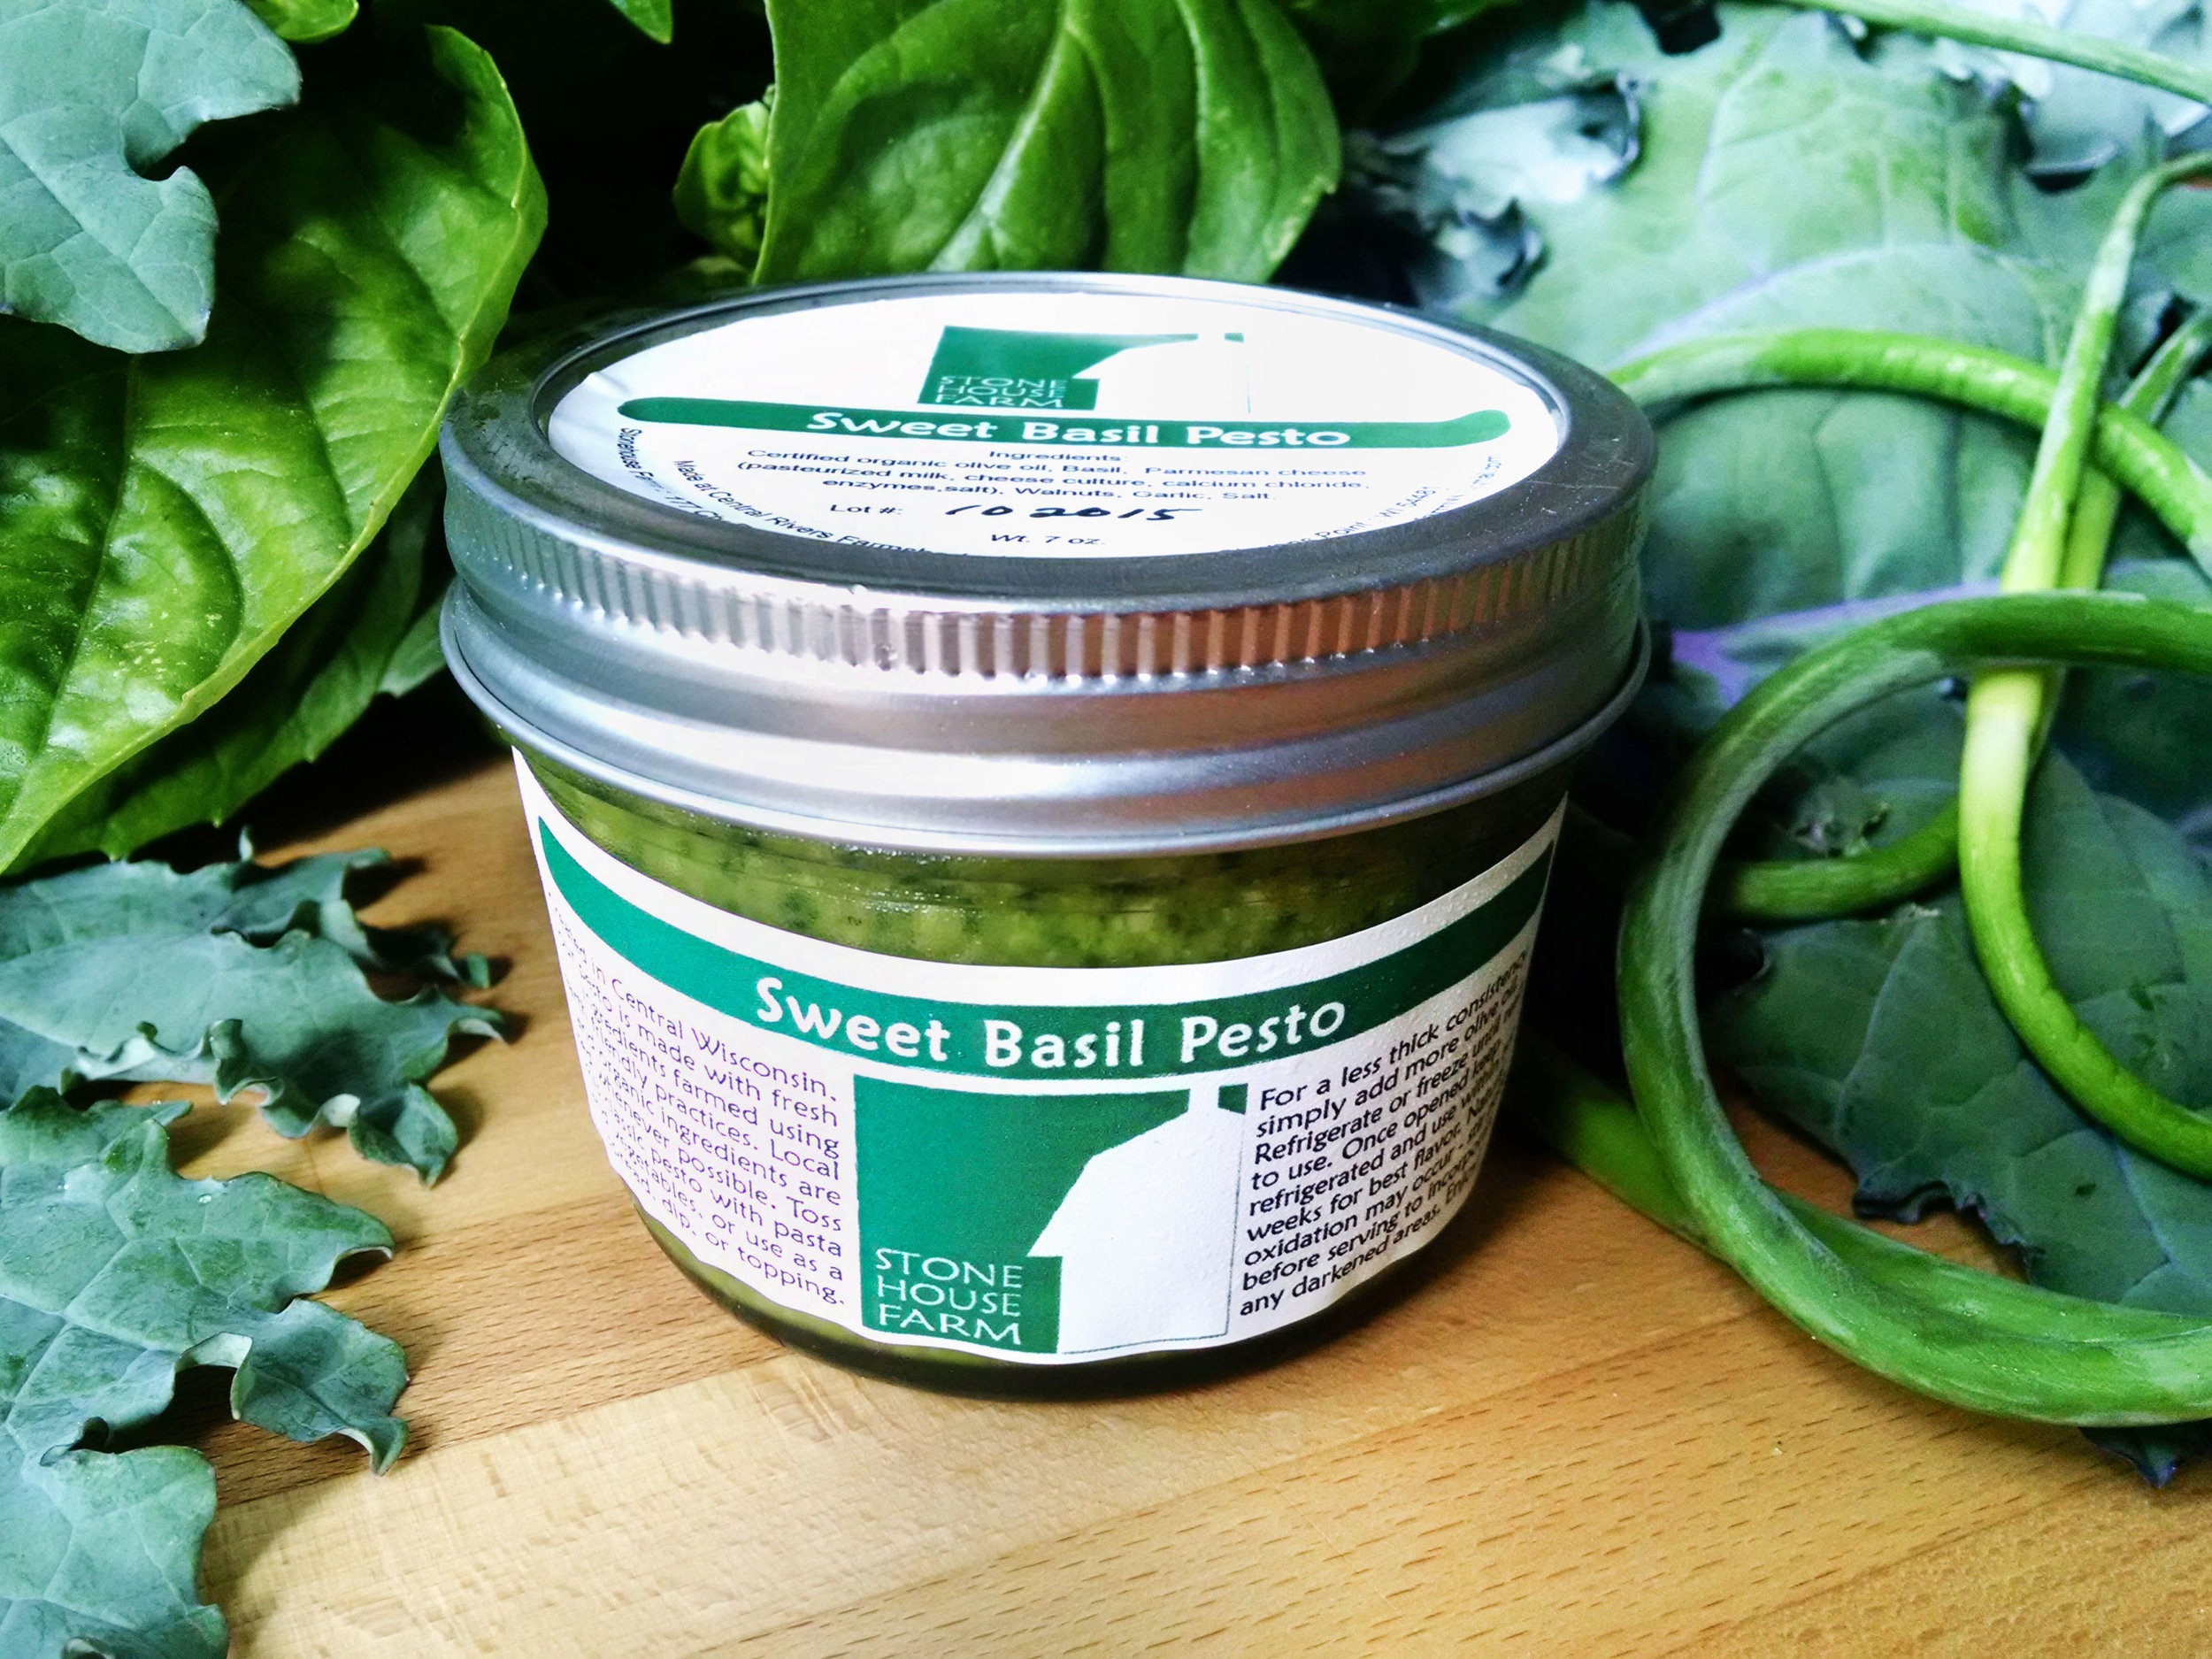 Sweet Basil Pesto:  Our trademark pesto! A (mostly) traditional blend of basil, certified organic olive oil, garlic, parmesan cheese, walnuts, and a pinch of sea salt. Enjoy this pesto with pasta, chicken, vegetables, on pizza, as a sandwich spread, or dip.